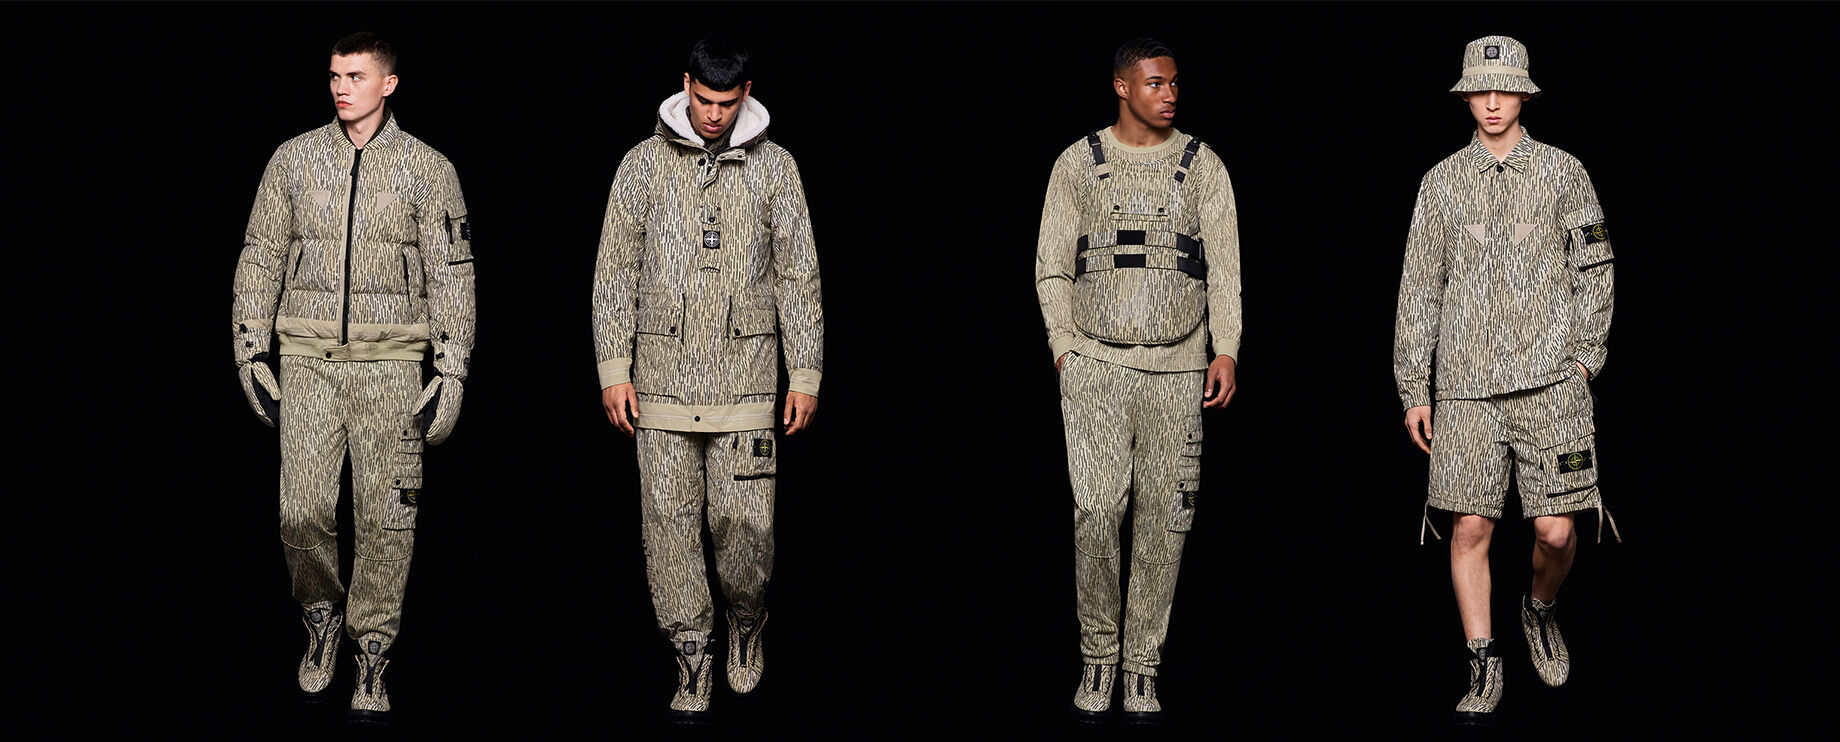 Four models in mid-stride wearing different khaki fall-winter outfits with garments featuring the same vertical line and subtle camo print.